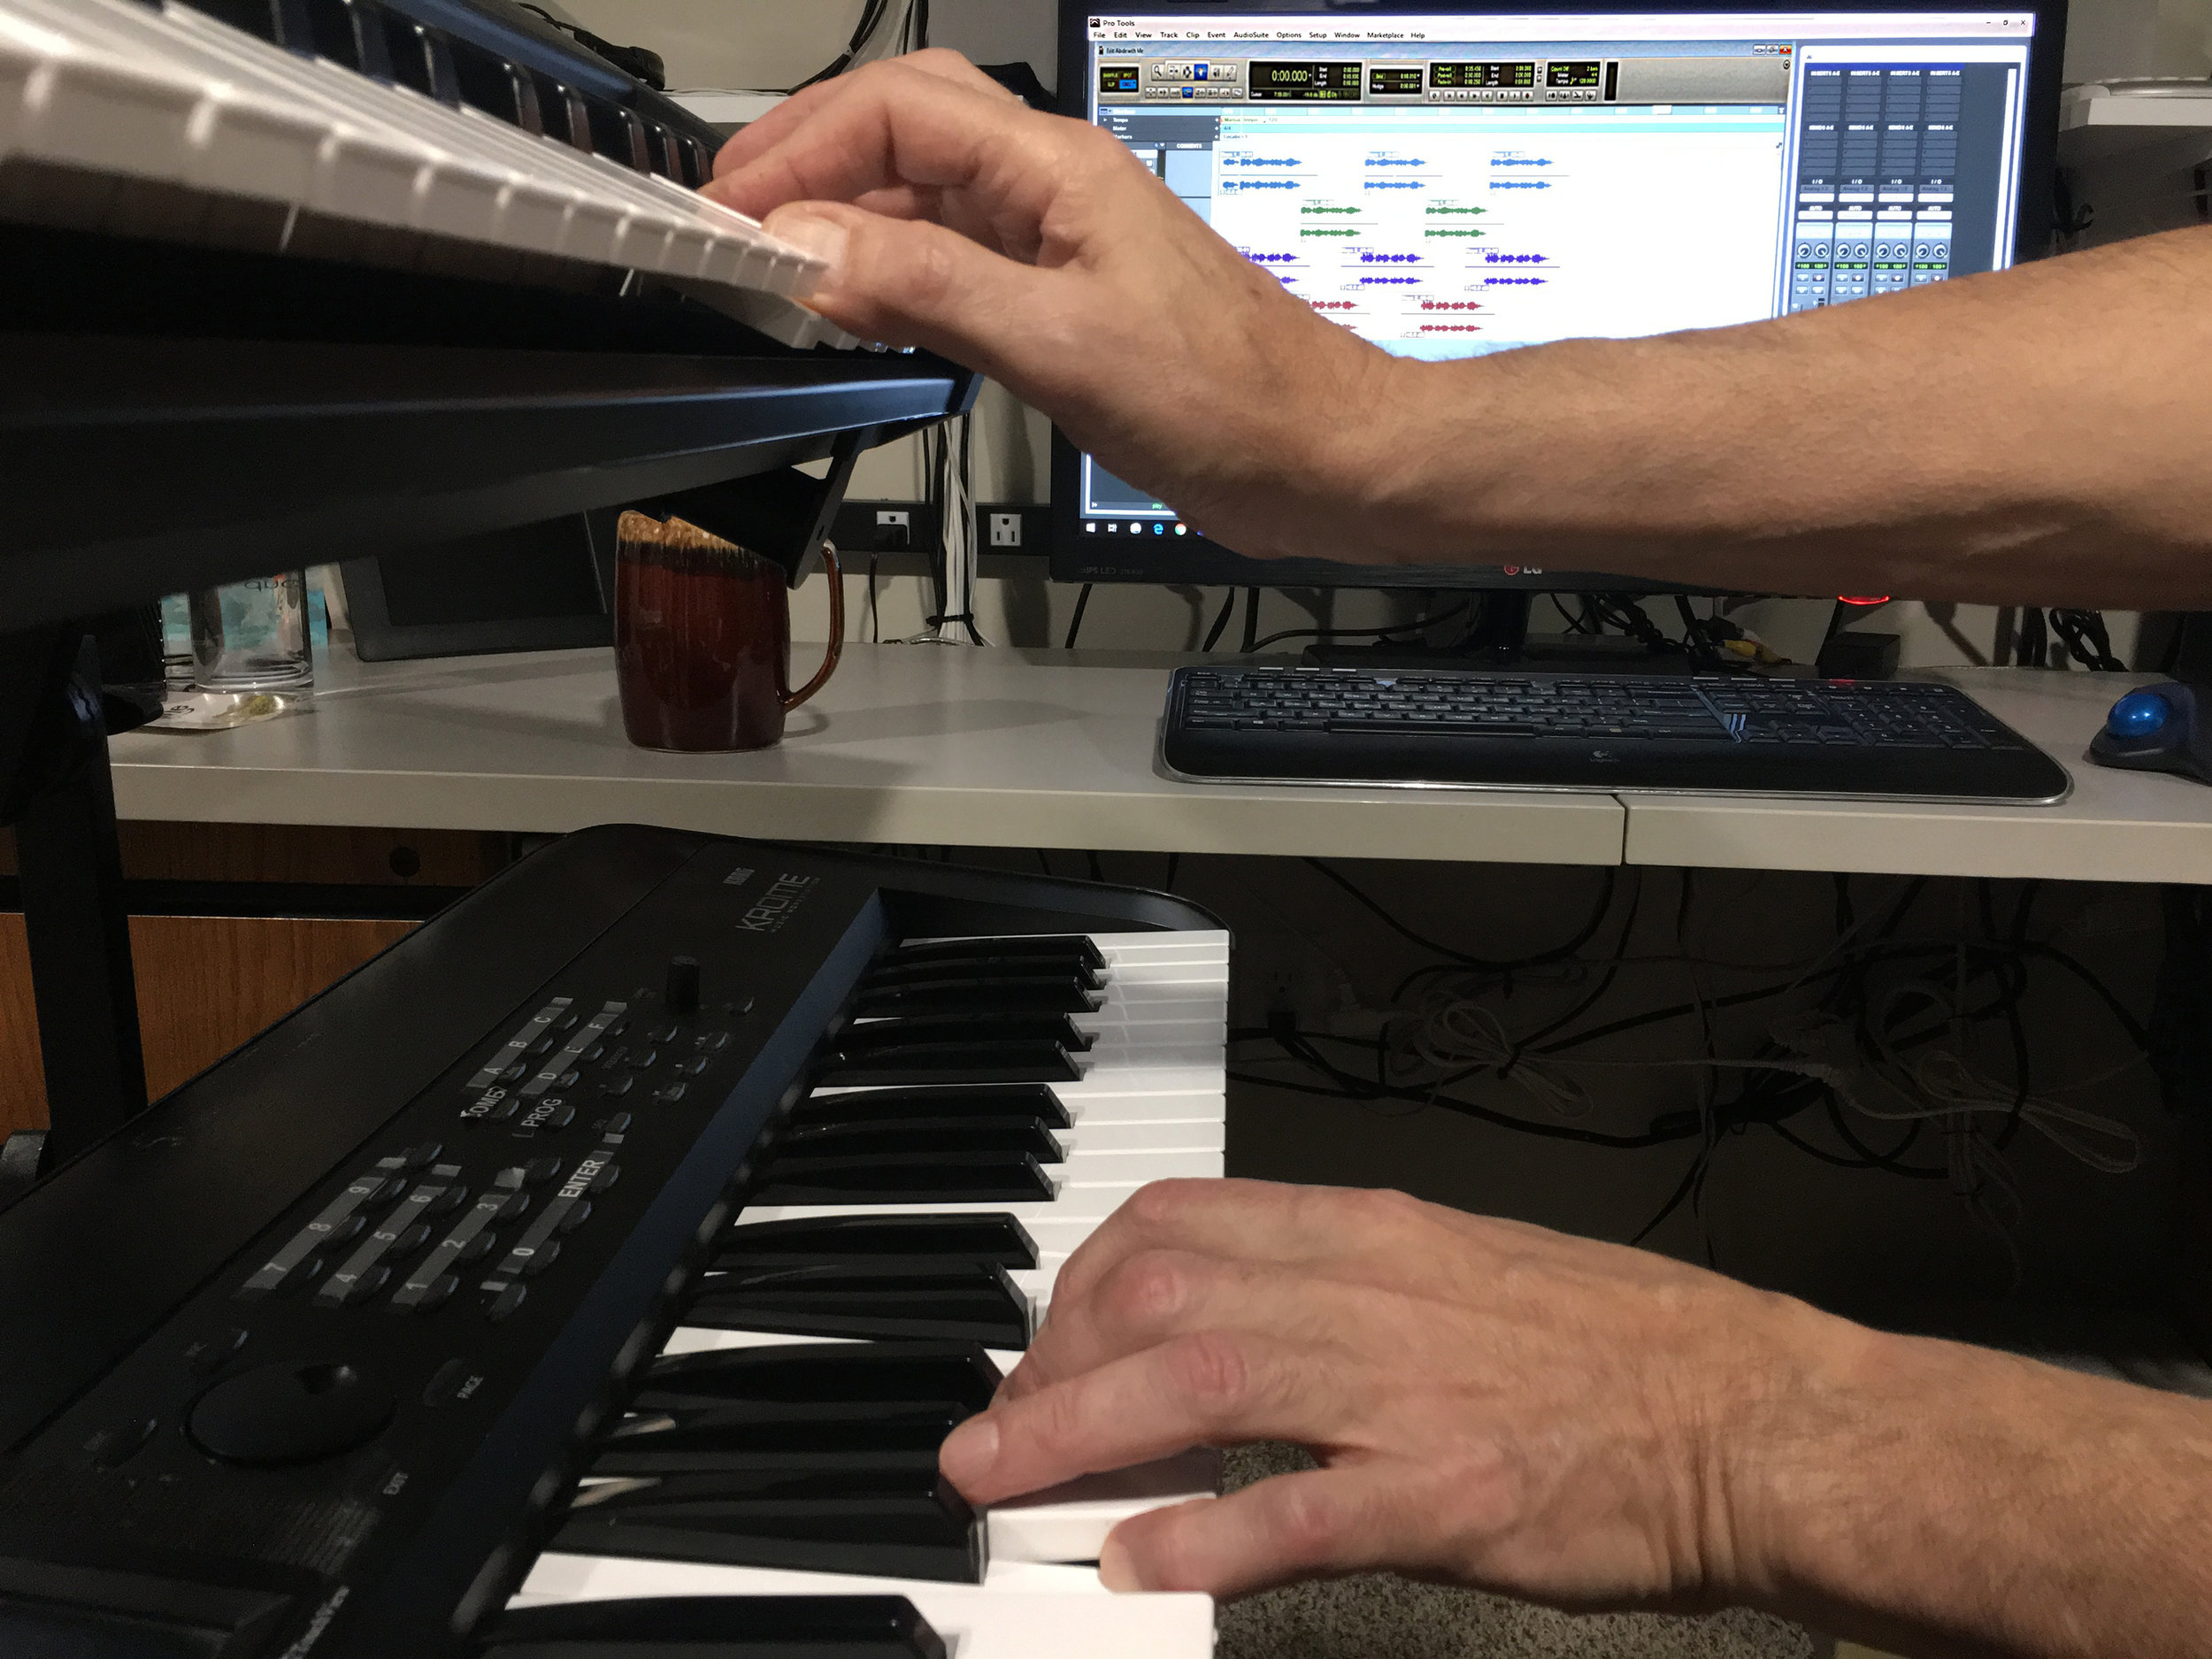 Hands on Keys - Layers.jpg